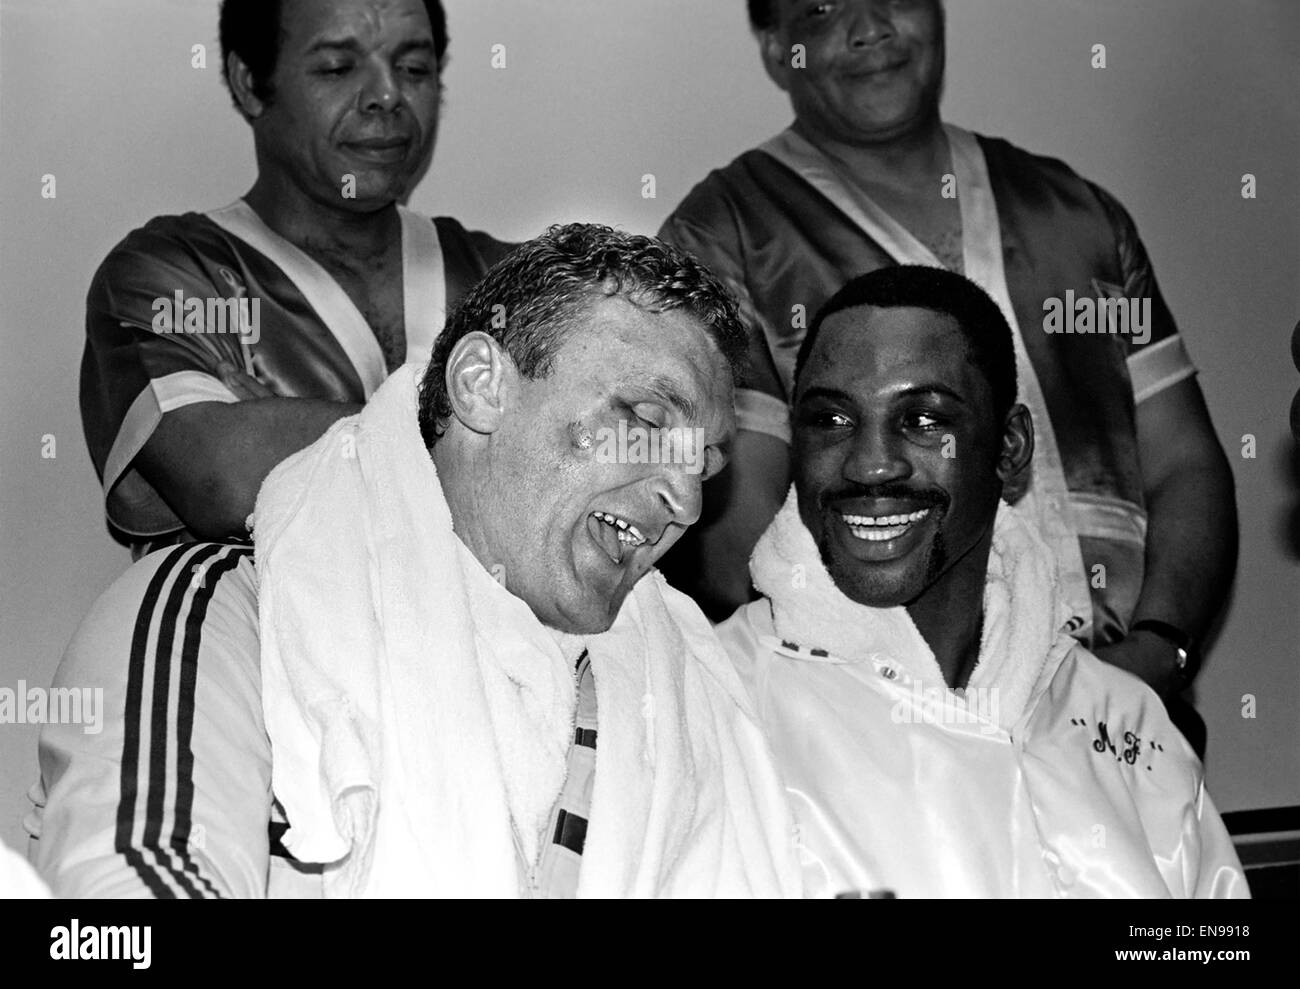 Joe Bugner with Marvis Frazier pose for the press following their bout at Atlantic City, New Jersey, USA. June 1983 - Stock Image